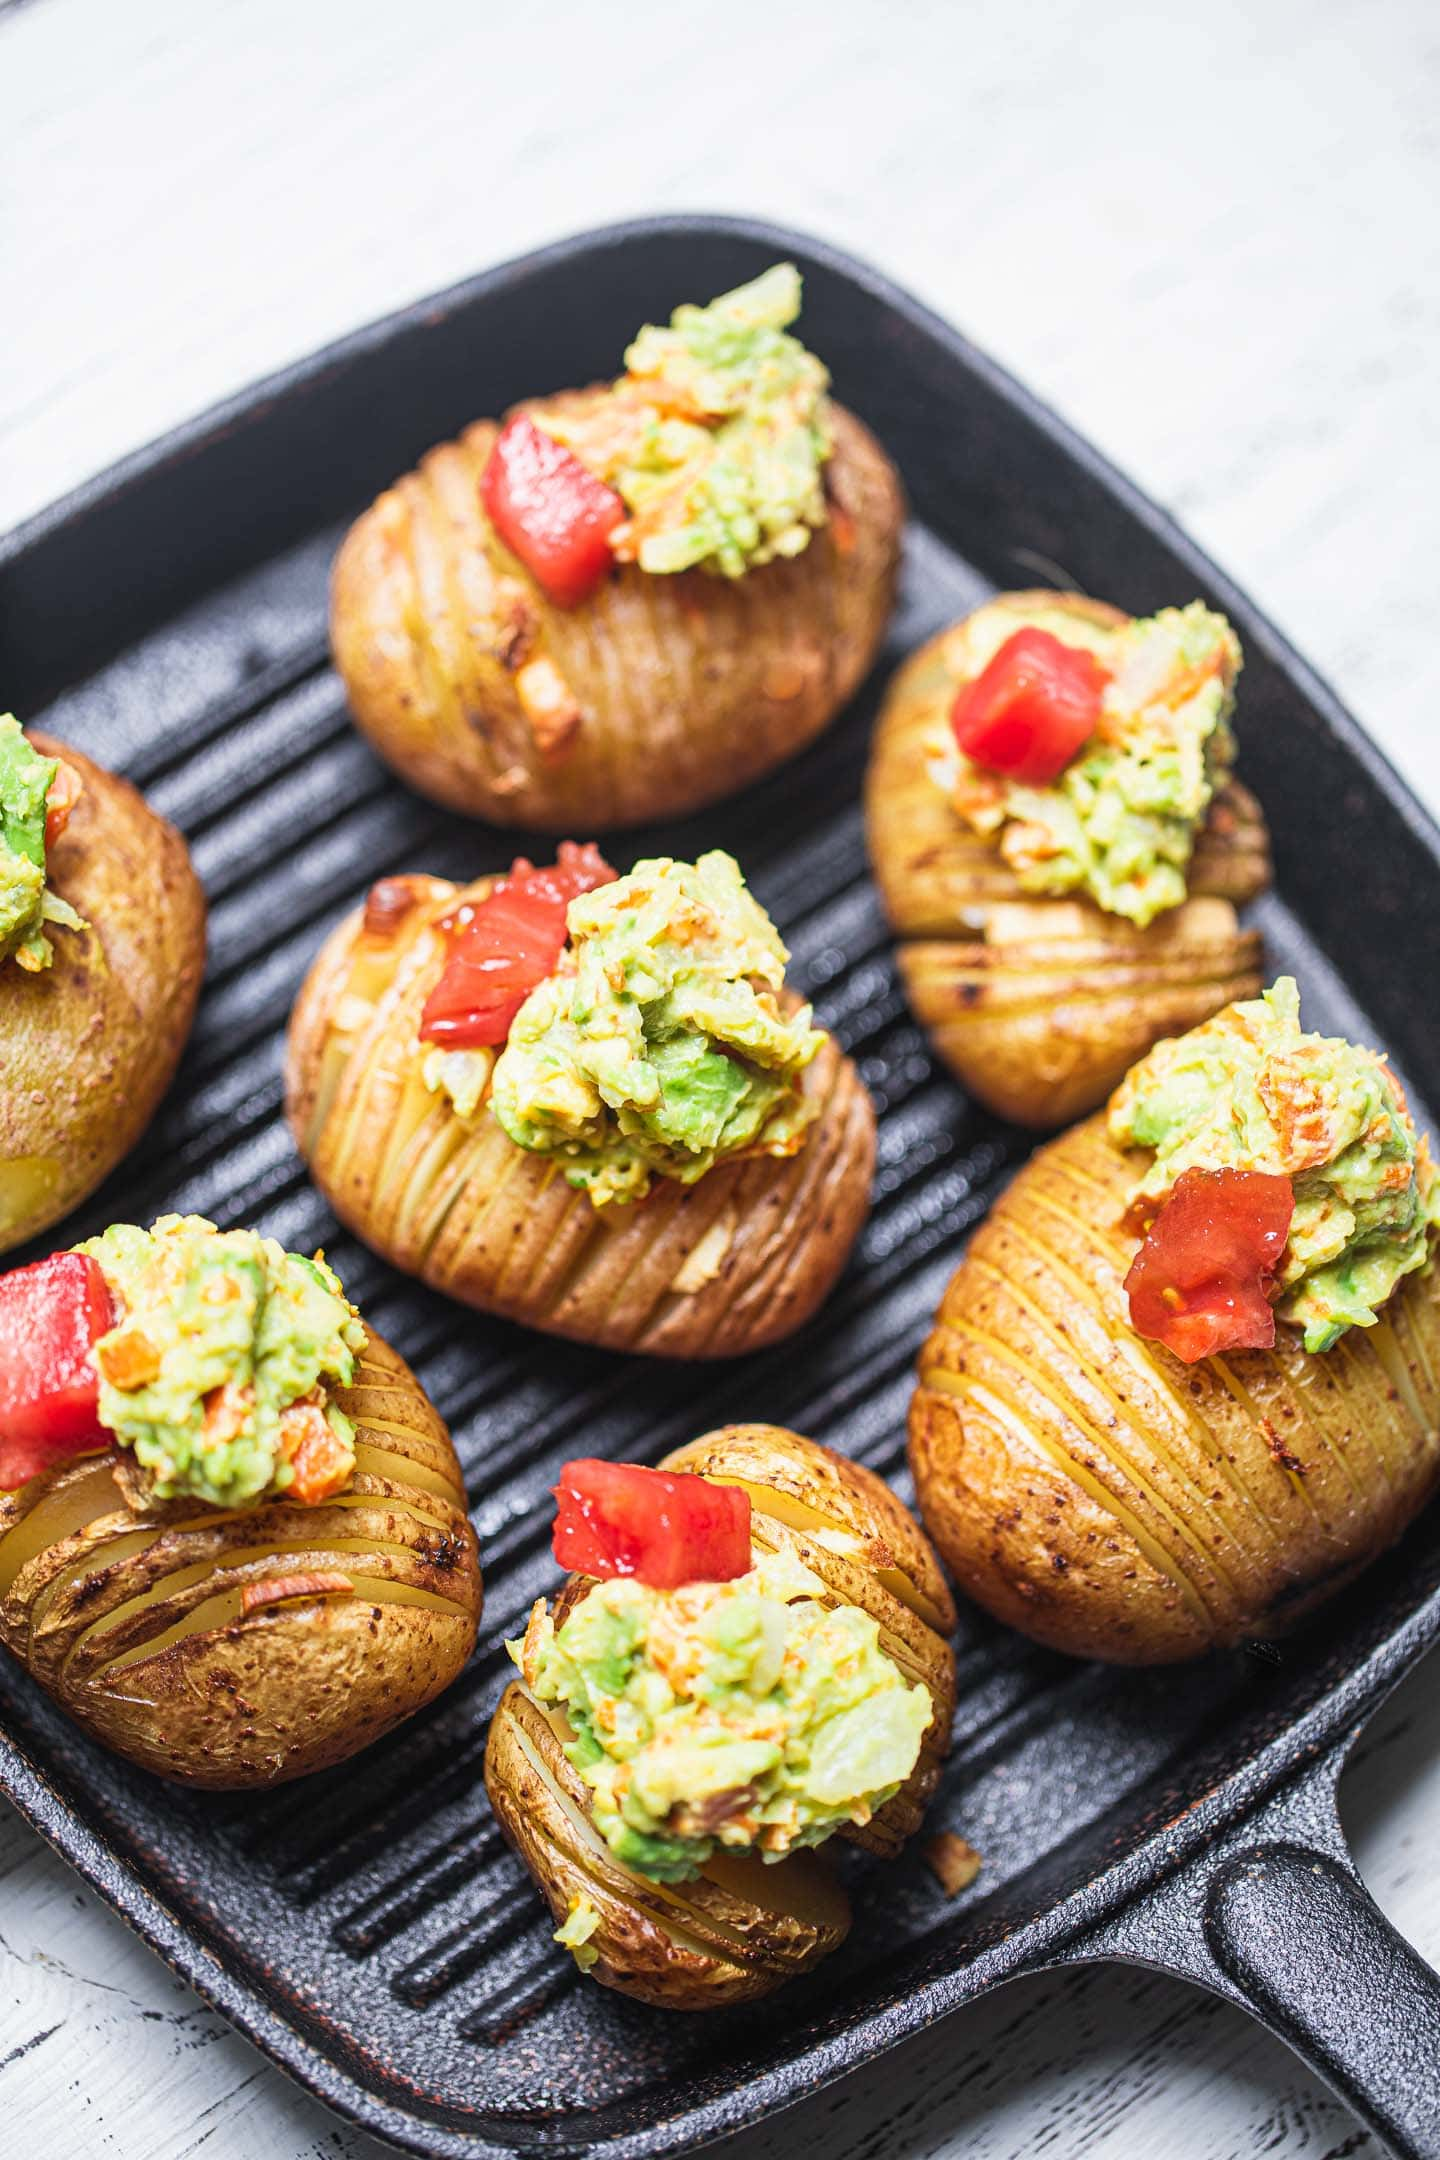 Skillet with hasselback potatoes and avocado sauce